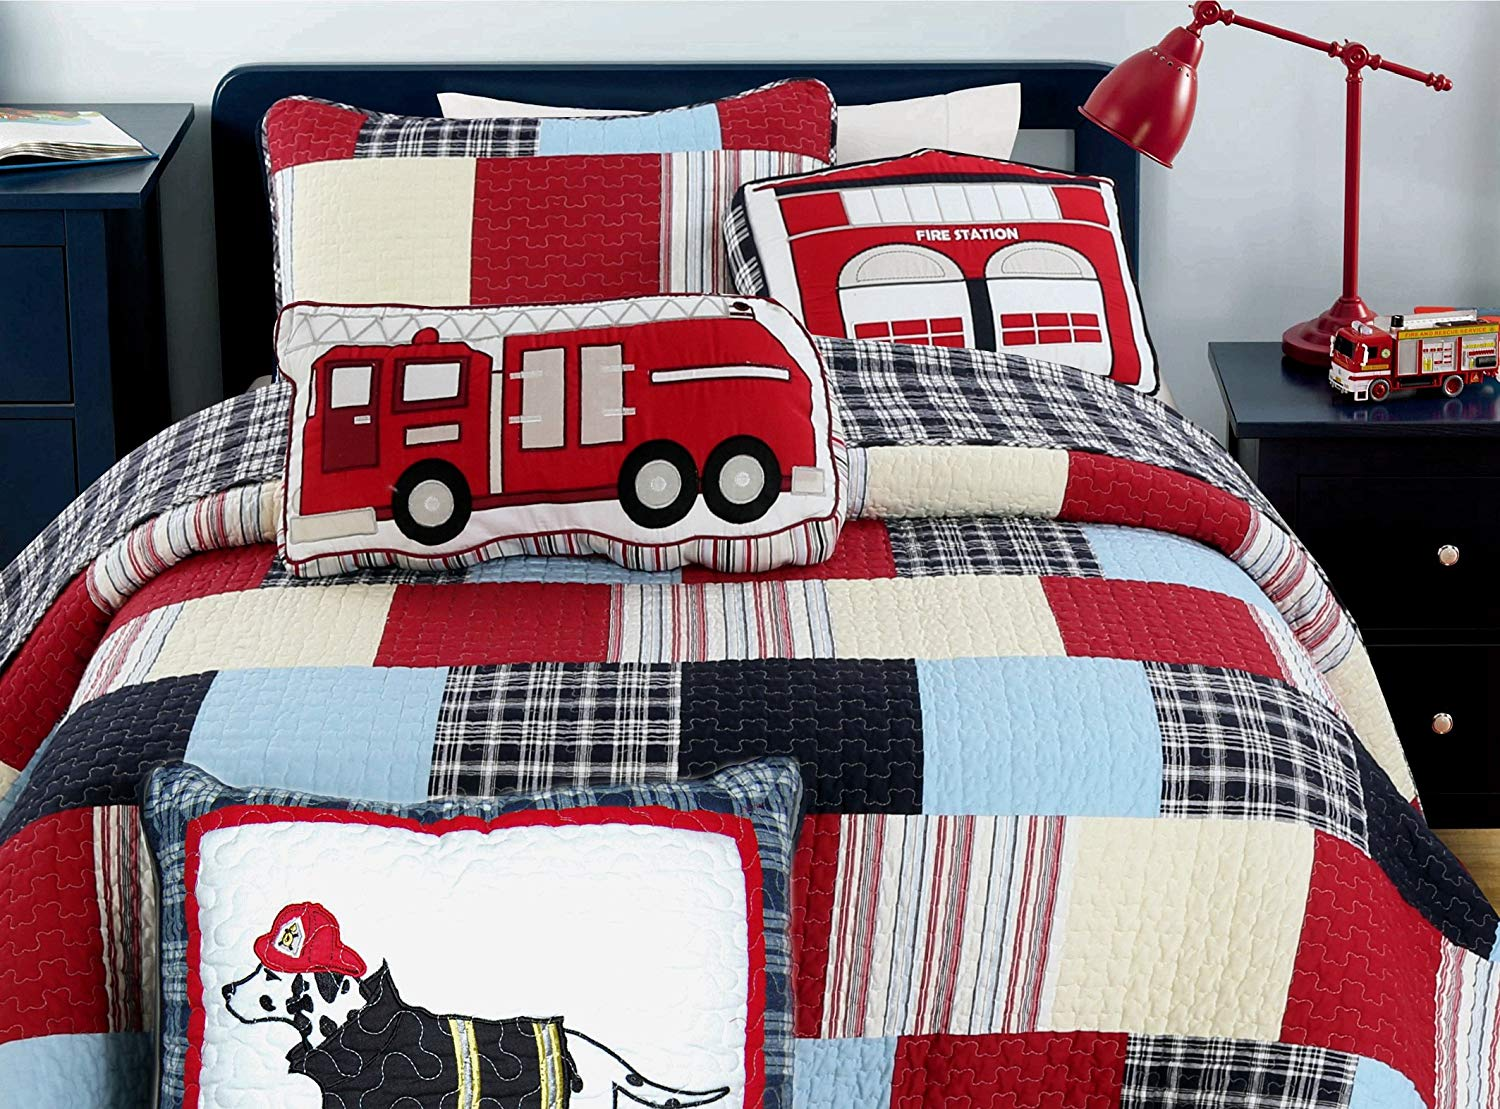 Cozy Line Home Fashions 5-Piece Quilt Bedding Set, Blue Red Cars Truck Fire Station Dog 100% COTTON Bedspread Coverlet Set, Gifts for Kids Boys(Twin- 5pc: 1 quilt + 1 sham + 3 Decorative Pillows)